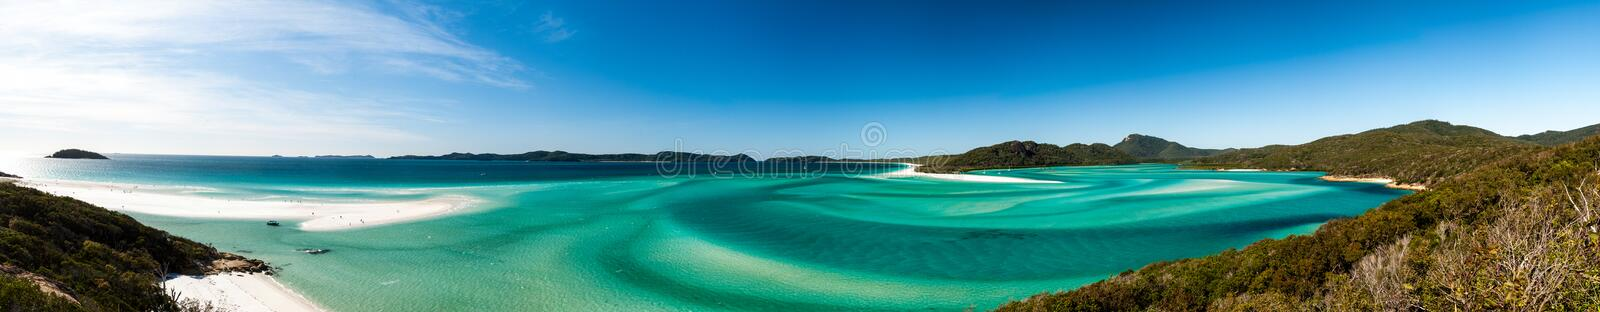 Hill Inlet from lookout at Tongue Point on Whitsunday Island. Swirling white sands and blue green water make spectacular patterns stock photography